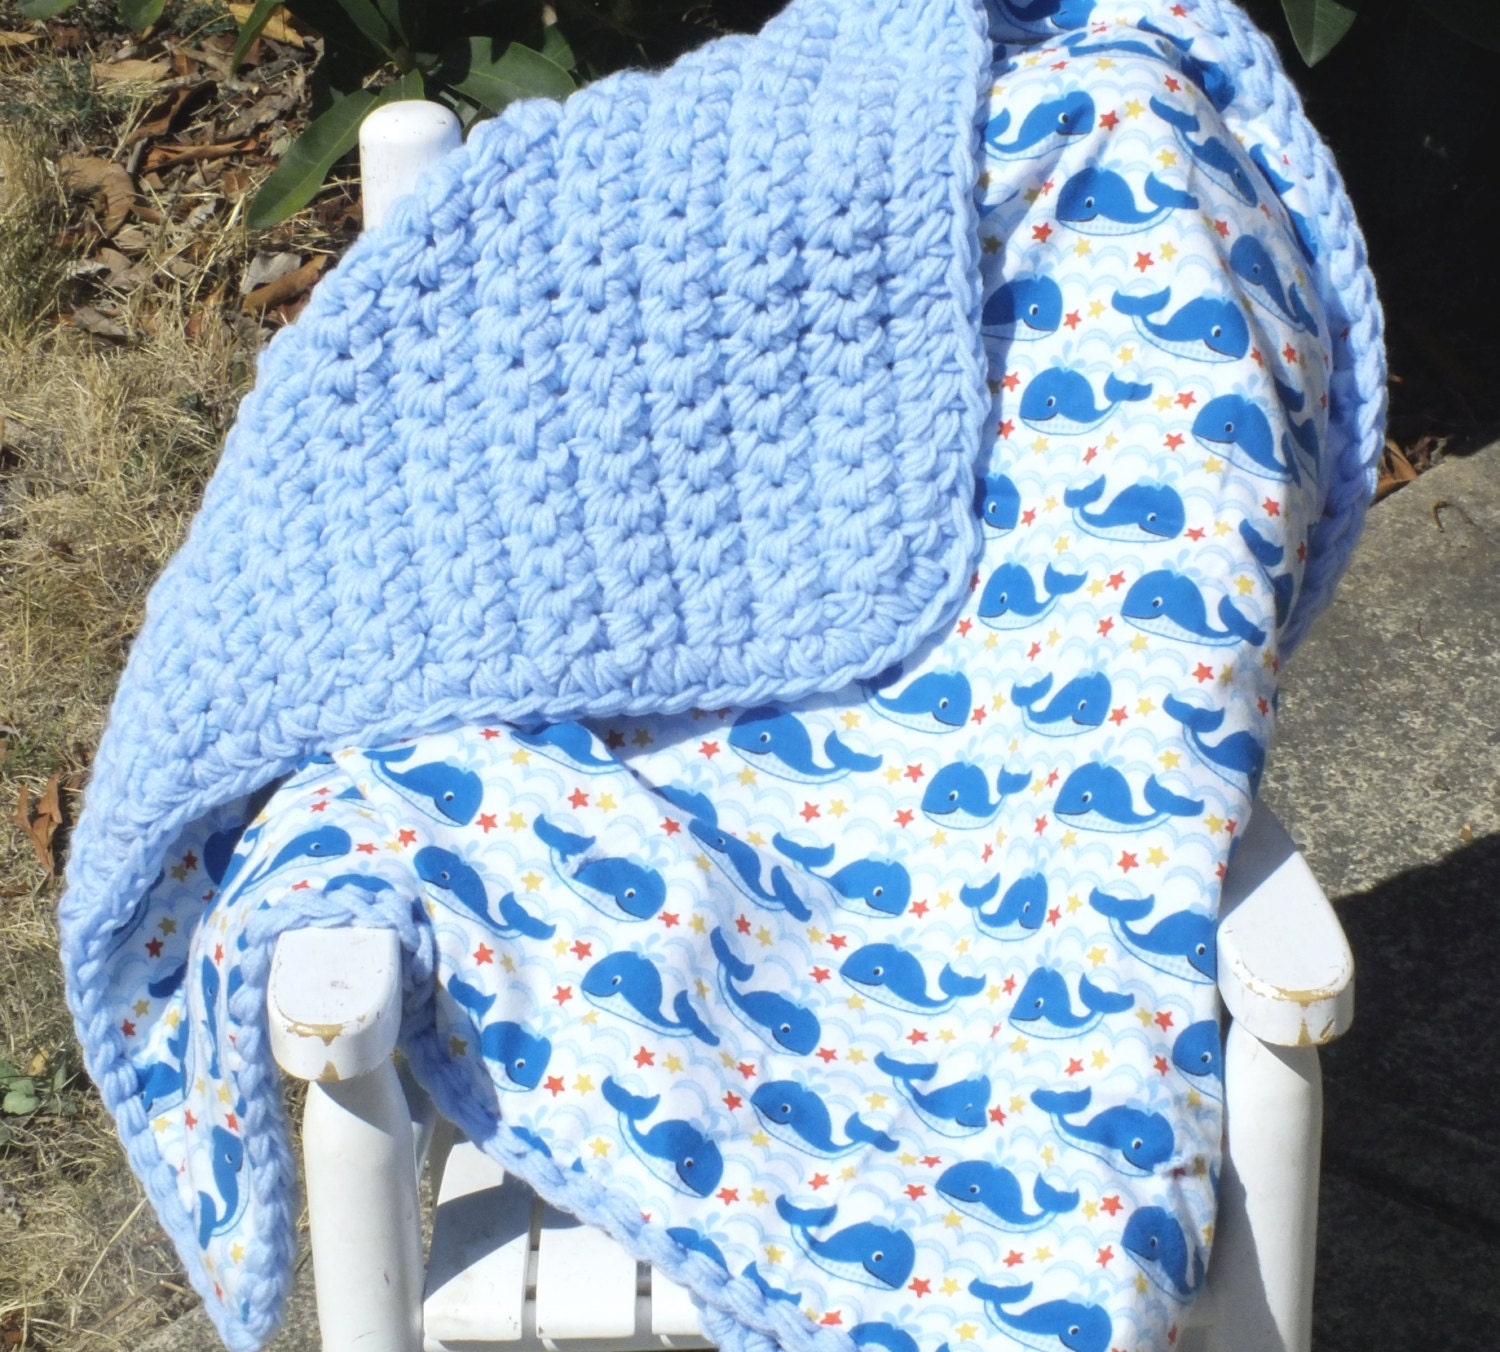 Double Sided Crochet Baby Blanket Pattern : Baby whale receiving blanketdouble sided crochet by ...